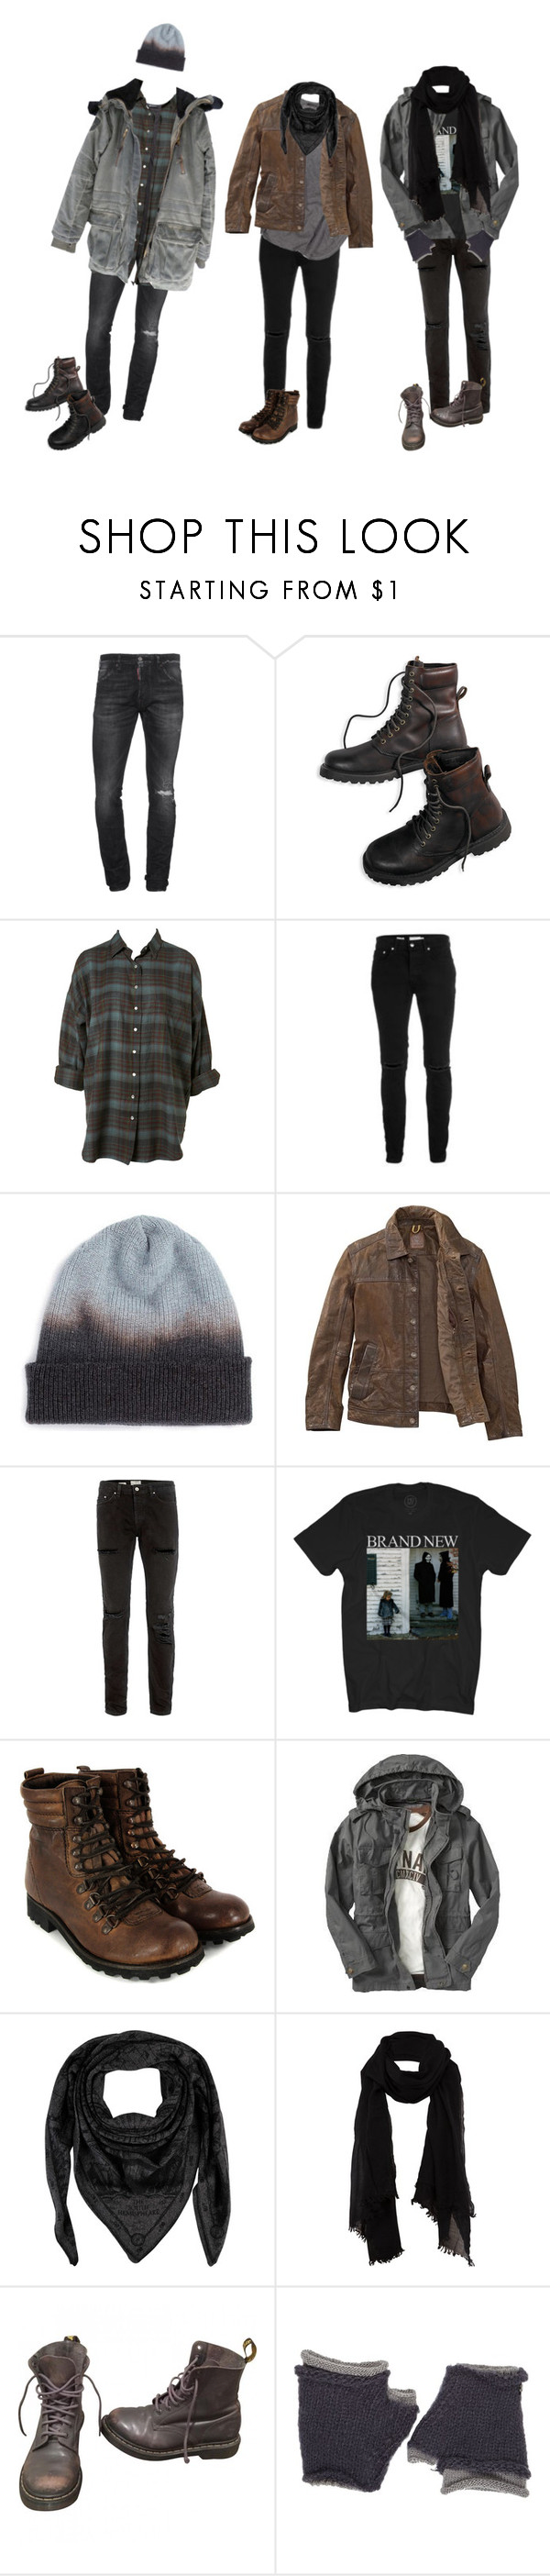 """I Love You So Much, But Do Me A Favor, Baby, Don't Reply"" by irondeficient ❤ liked on Polyvore featuring Dsquared2, American Eagle Outfitters, Timberland, Topman, H by Hudson, Old Navy, Comptoir Des Cotonniers, Dr. Martens, Wooden Ships and Zadig & Voltaire"